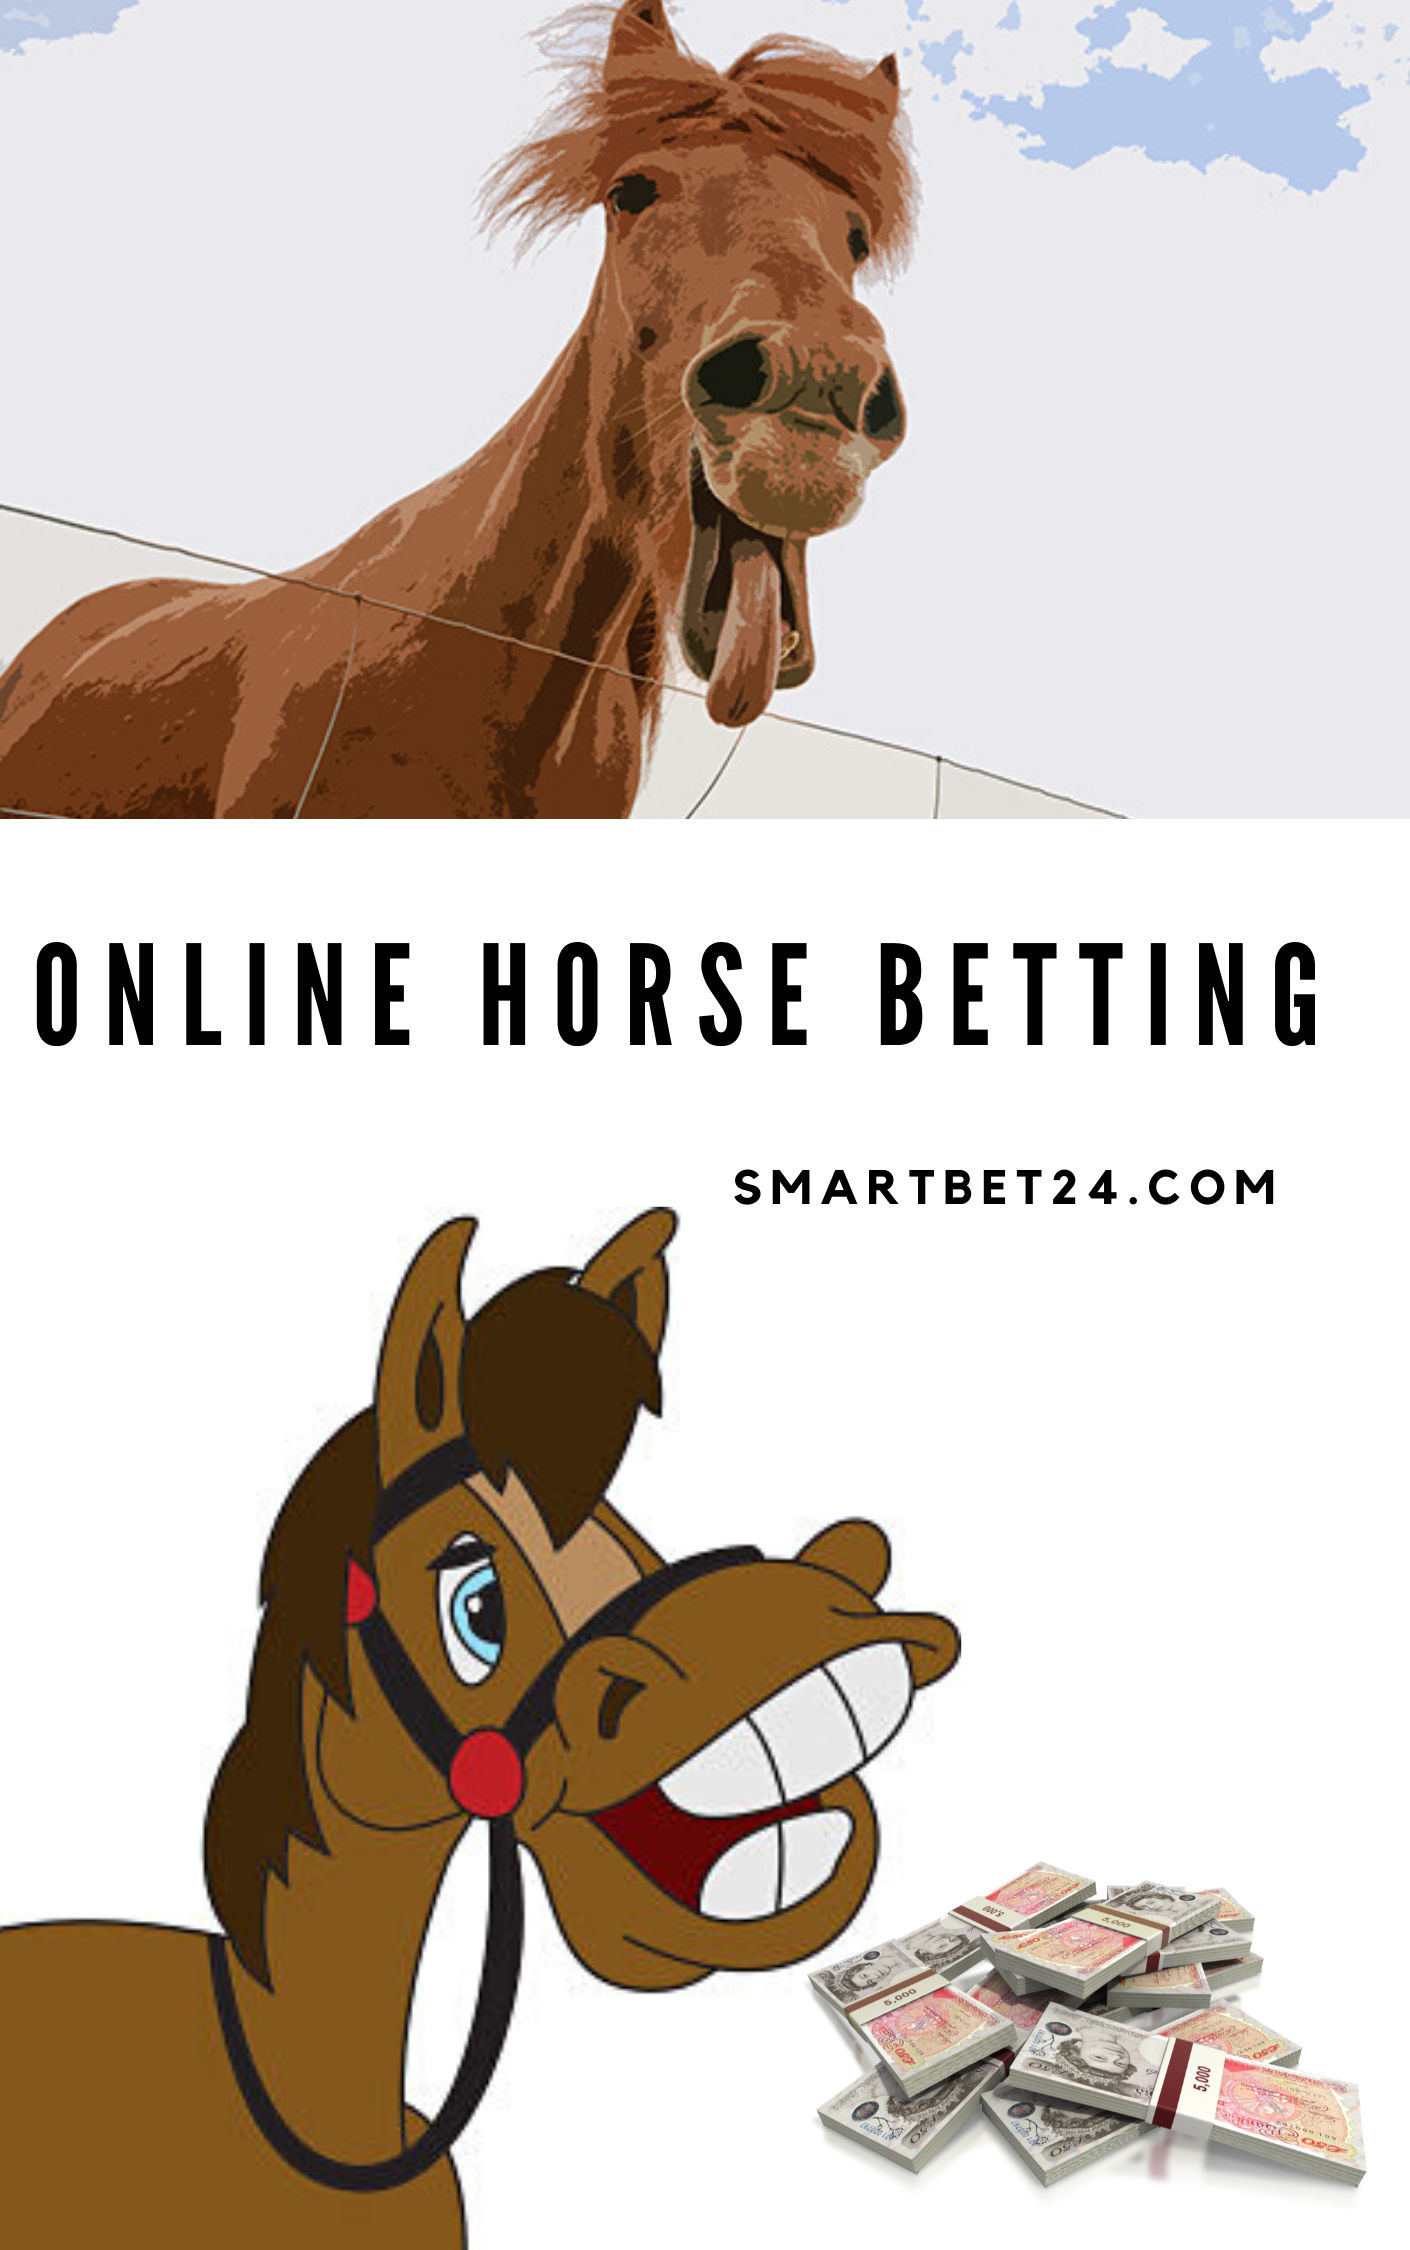 Free horse betting tips gulfstream park horse racing odds betting craps